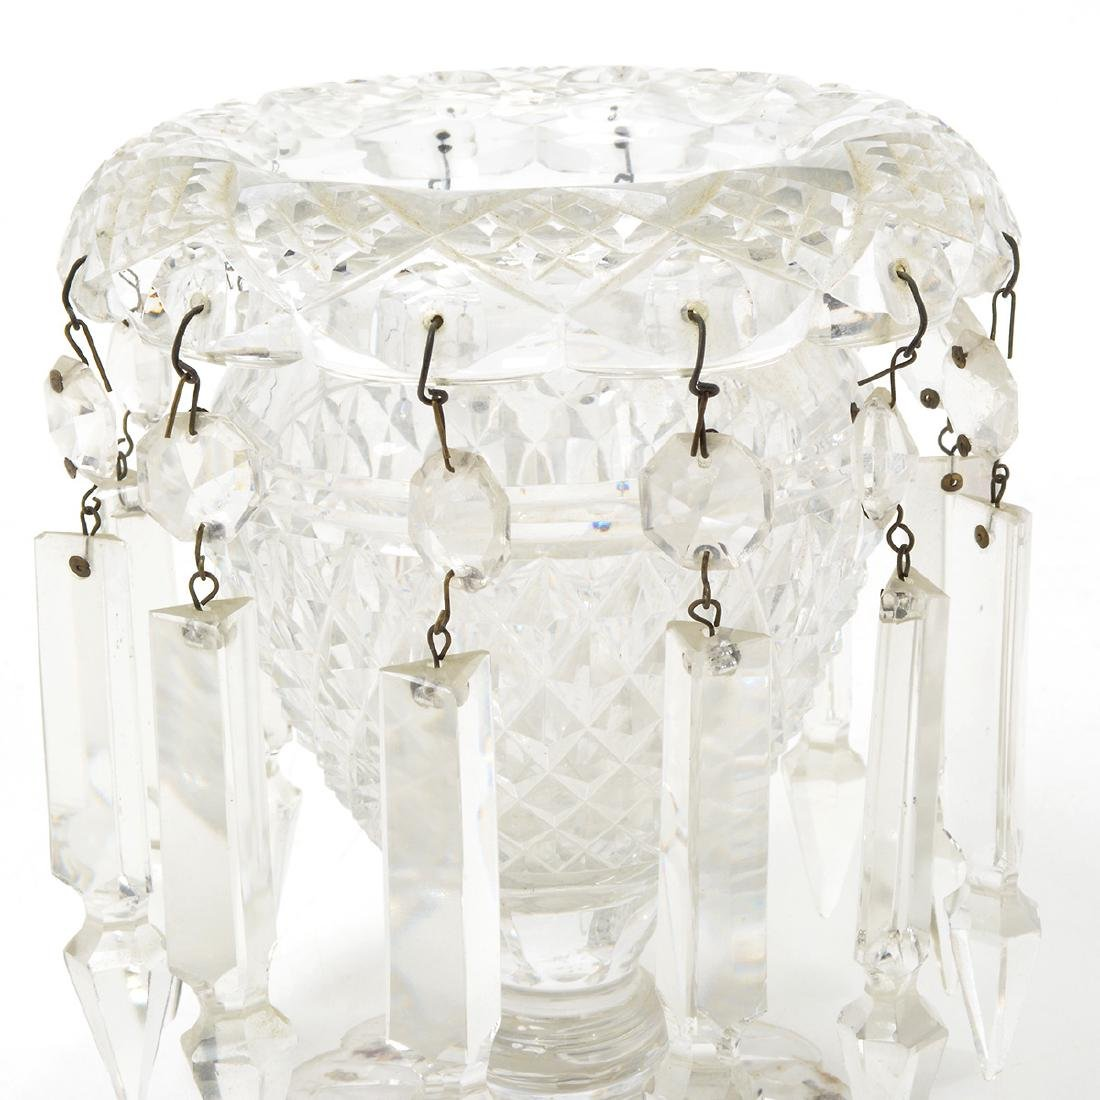 Pair of Victorian Cut Glass Lusters, Late 19th Century - 4